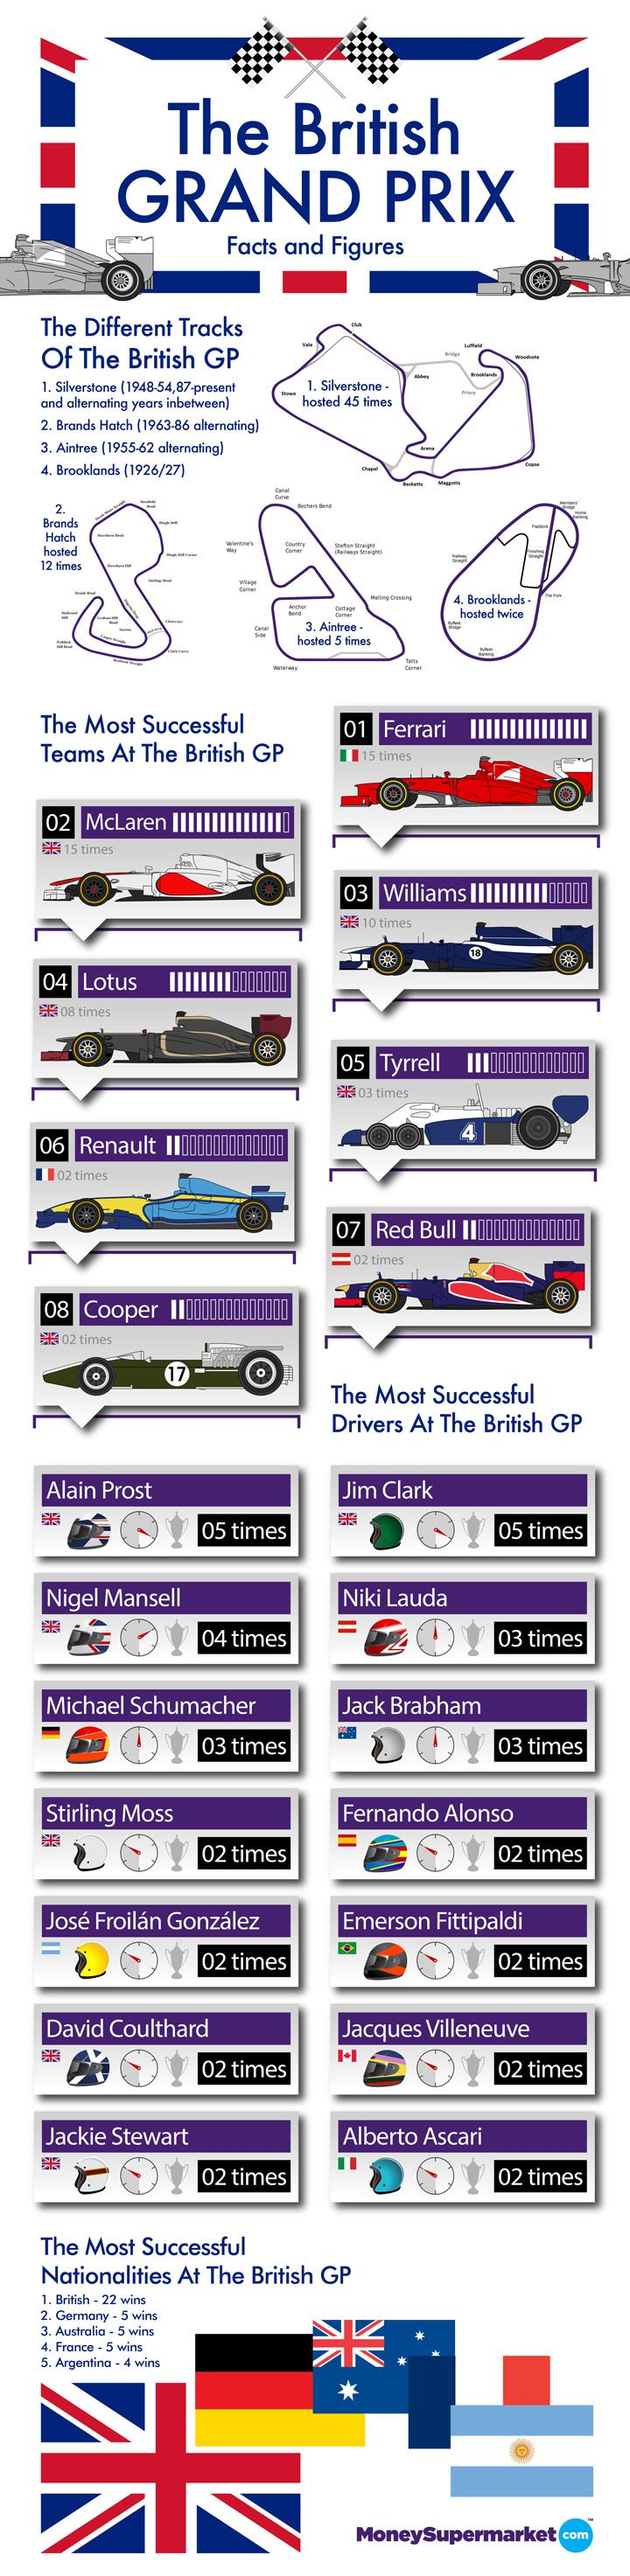 #F1 key facts and figures about the history of the #Silverstone Grand Prix #Infographic